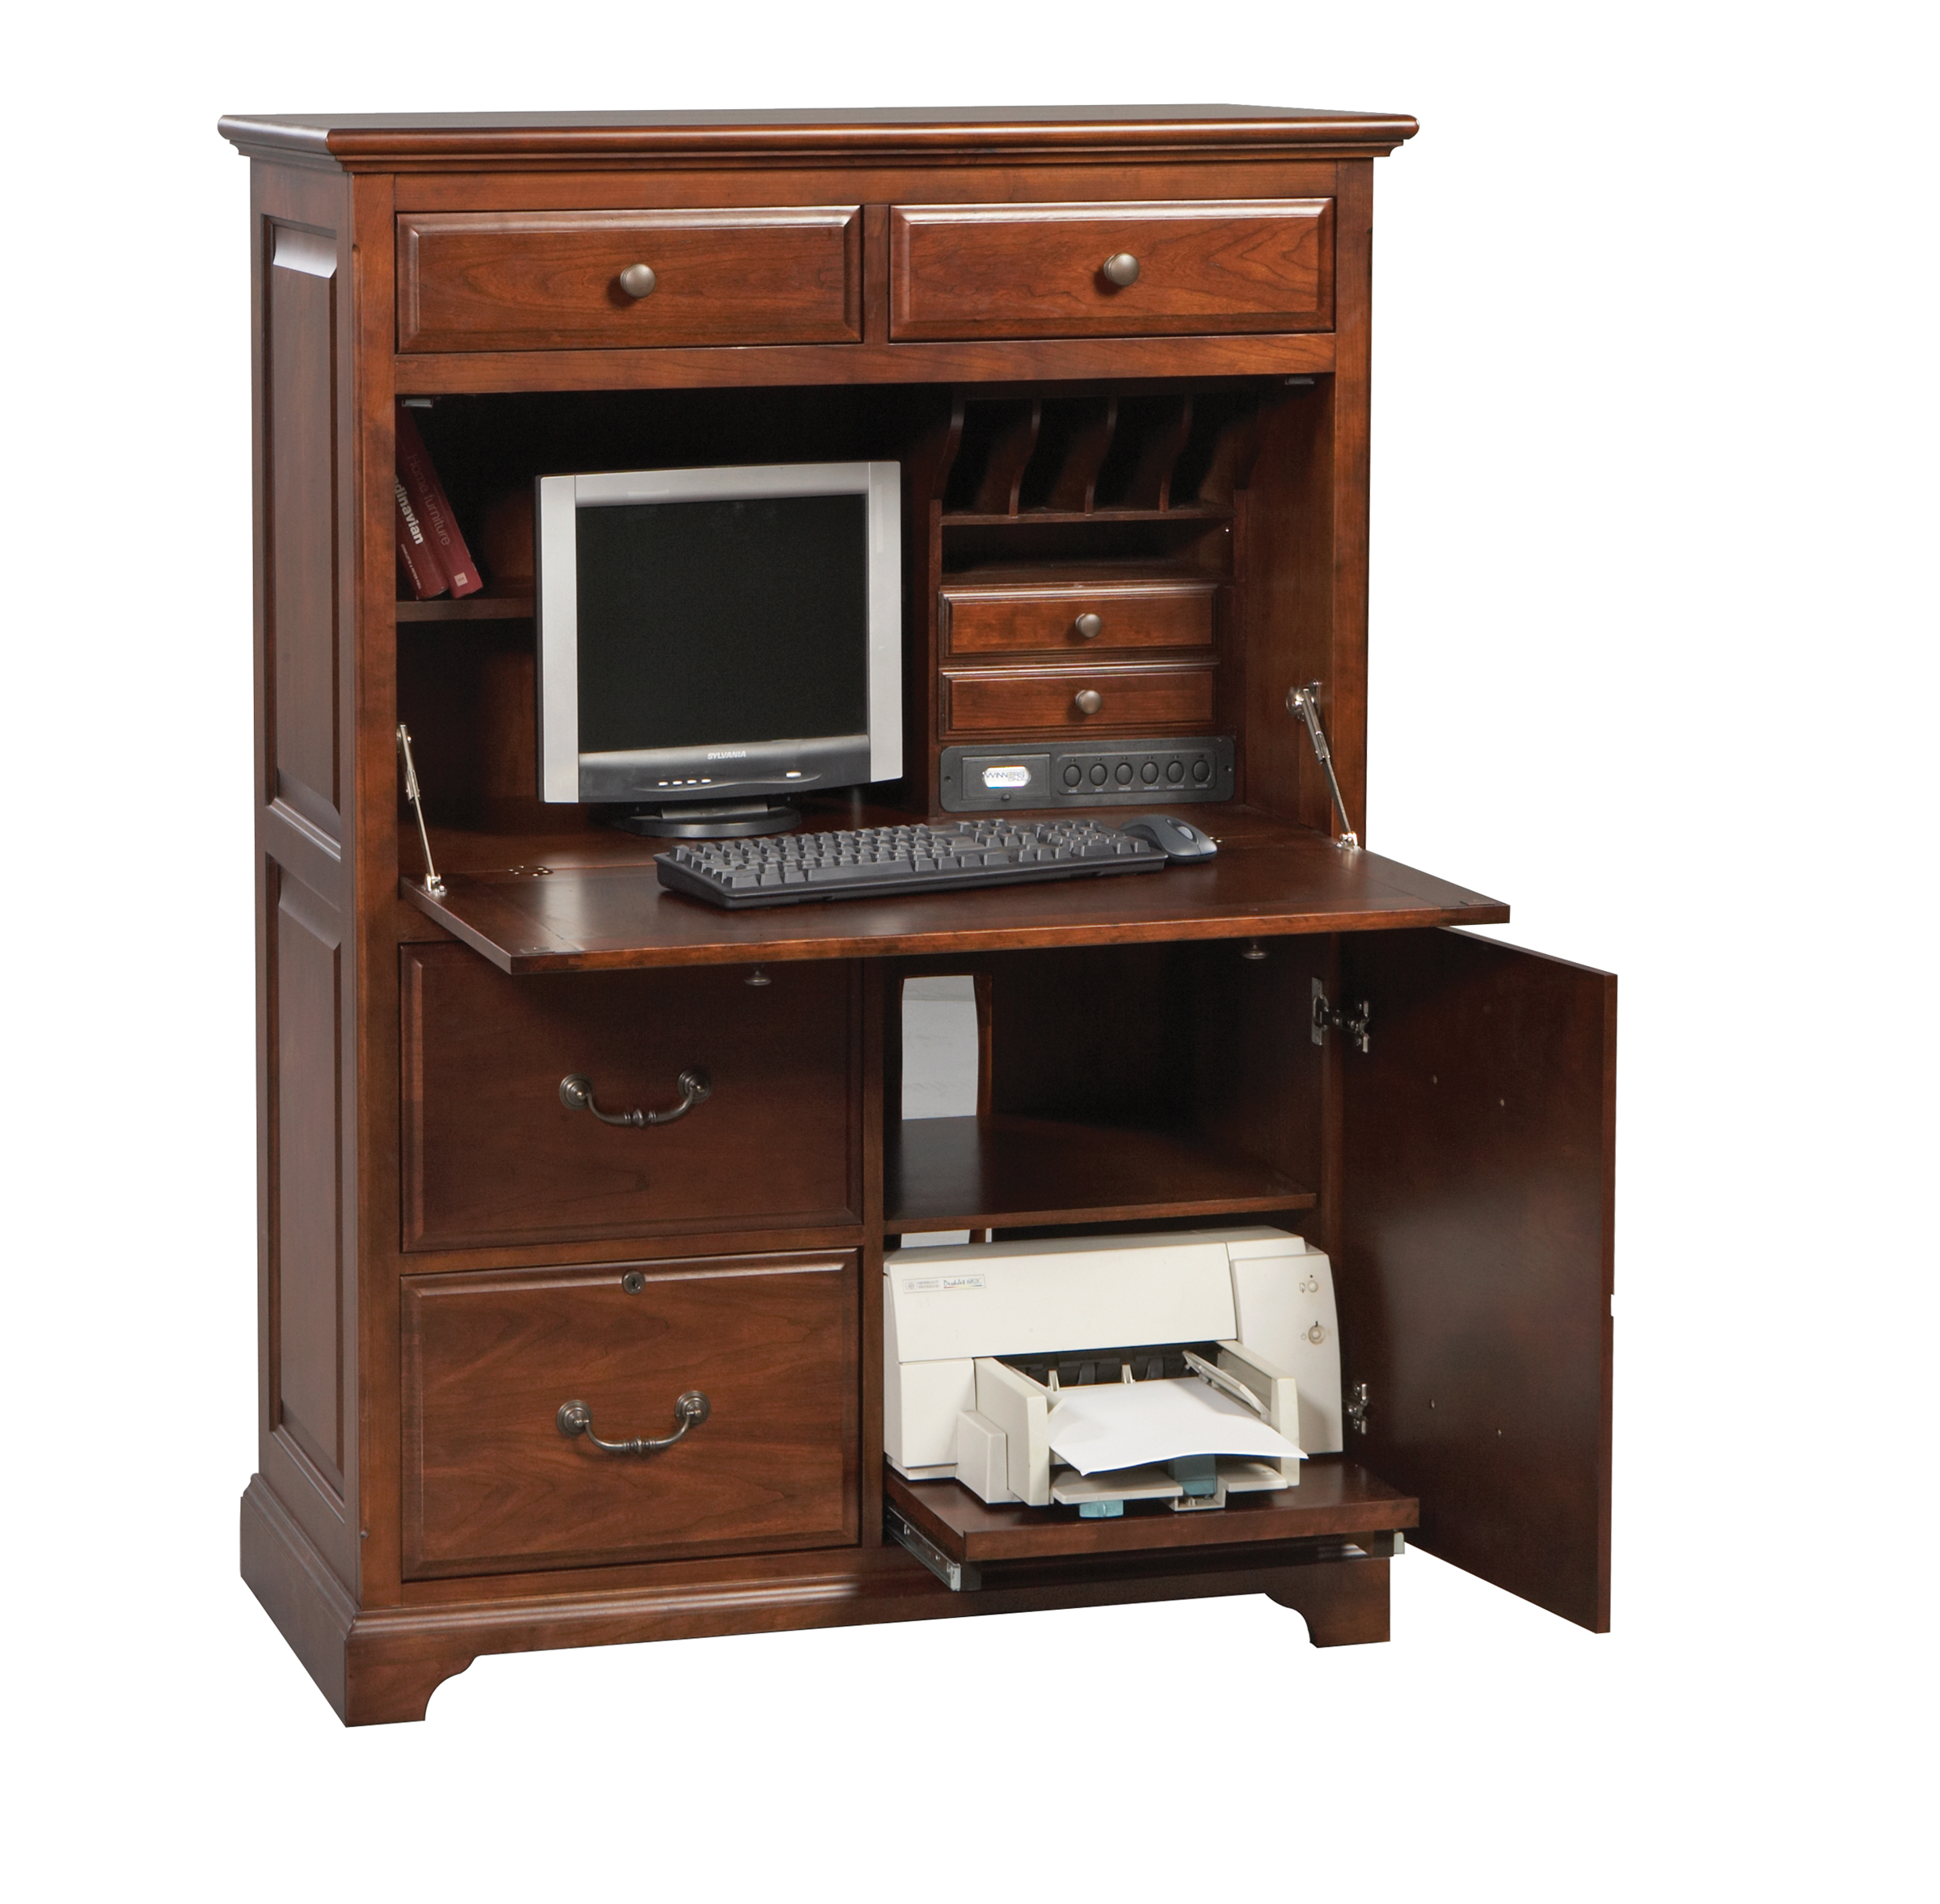 computer armoire desk ikea. Black Bedroom Furniture Sets. Home Design Ideas